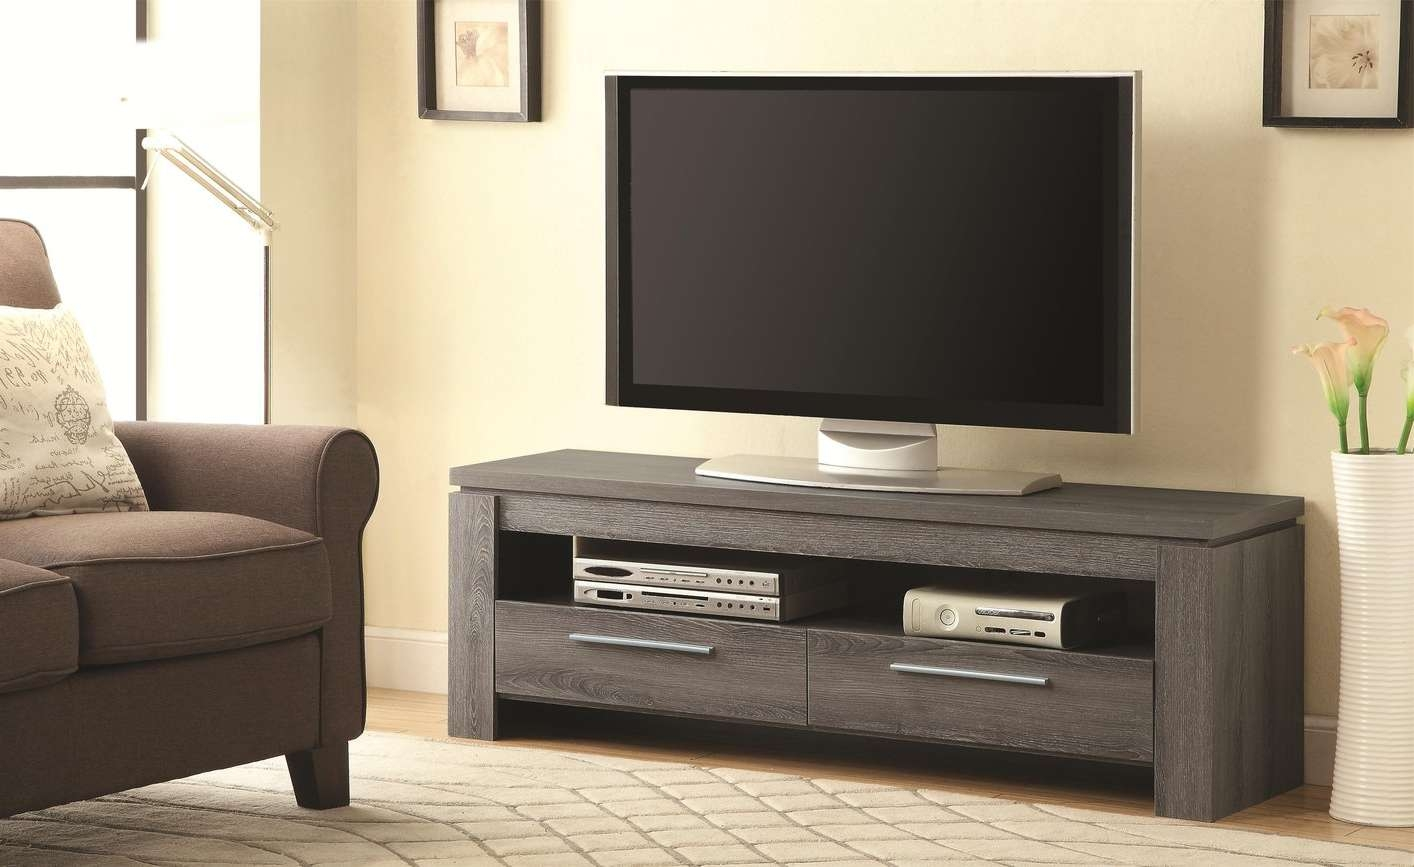 Grey Wood Tv Stand – Steal A Sofa Furniture Outlet Los Angeles Ca With Grey Wood Tv Stands (View 2 of 15)